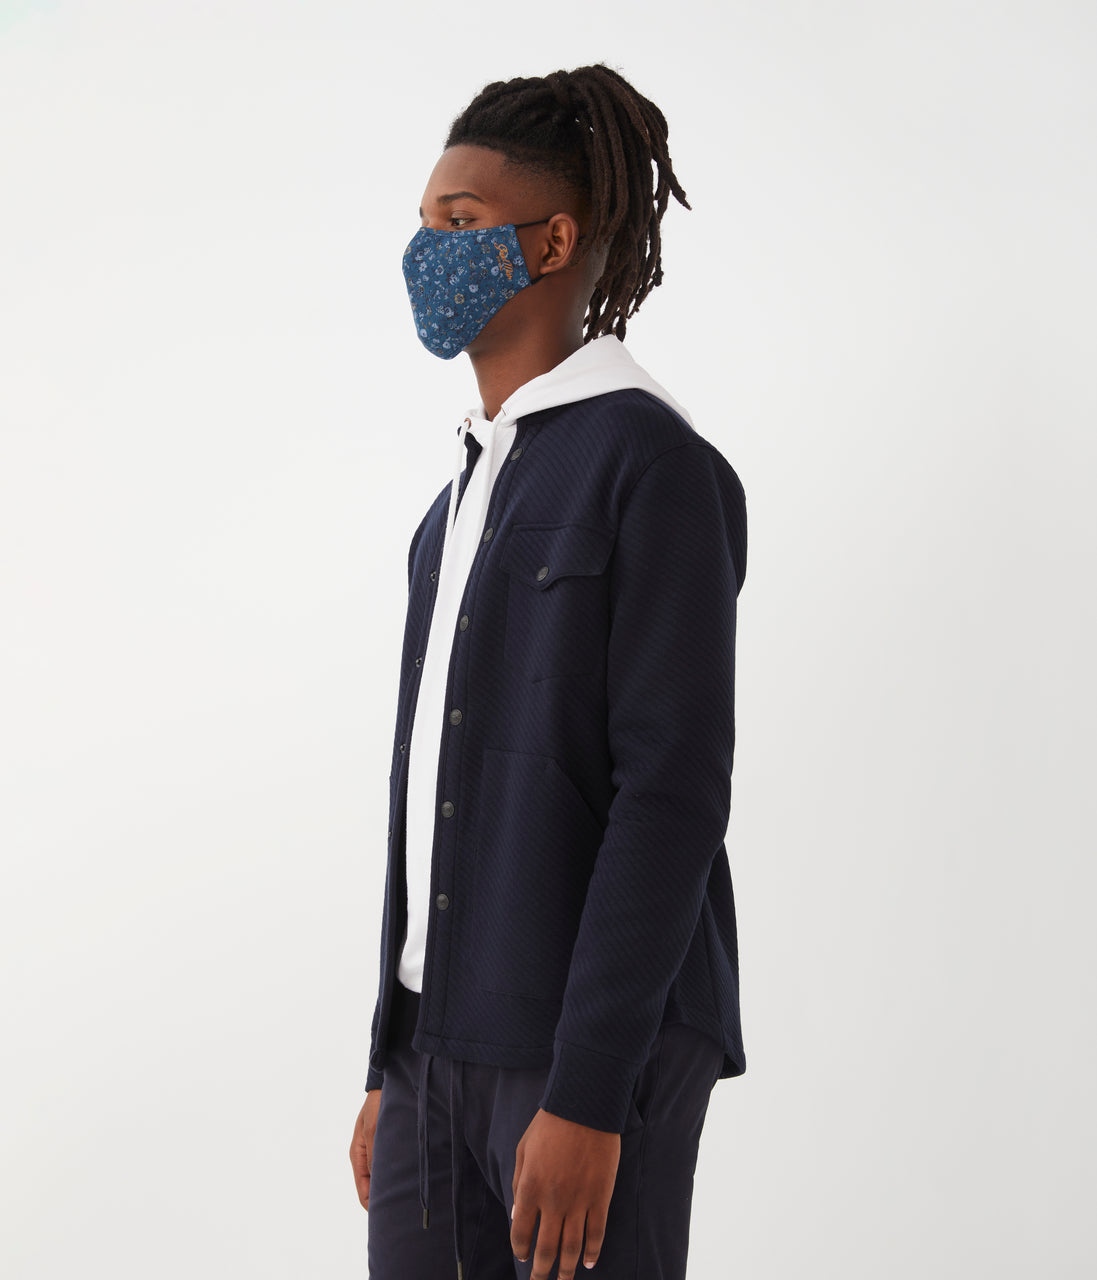 MVP Mask in Premium Italian Cotton - Indigo English Floral - Good Man Brand - MVP Mask in Premium Italian Cotton - Indigo English Floral